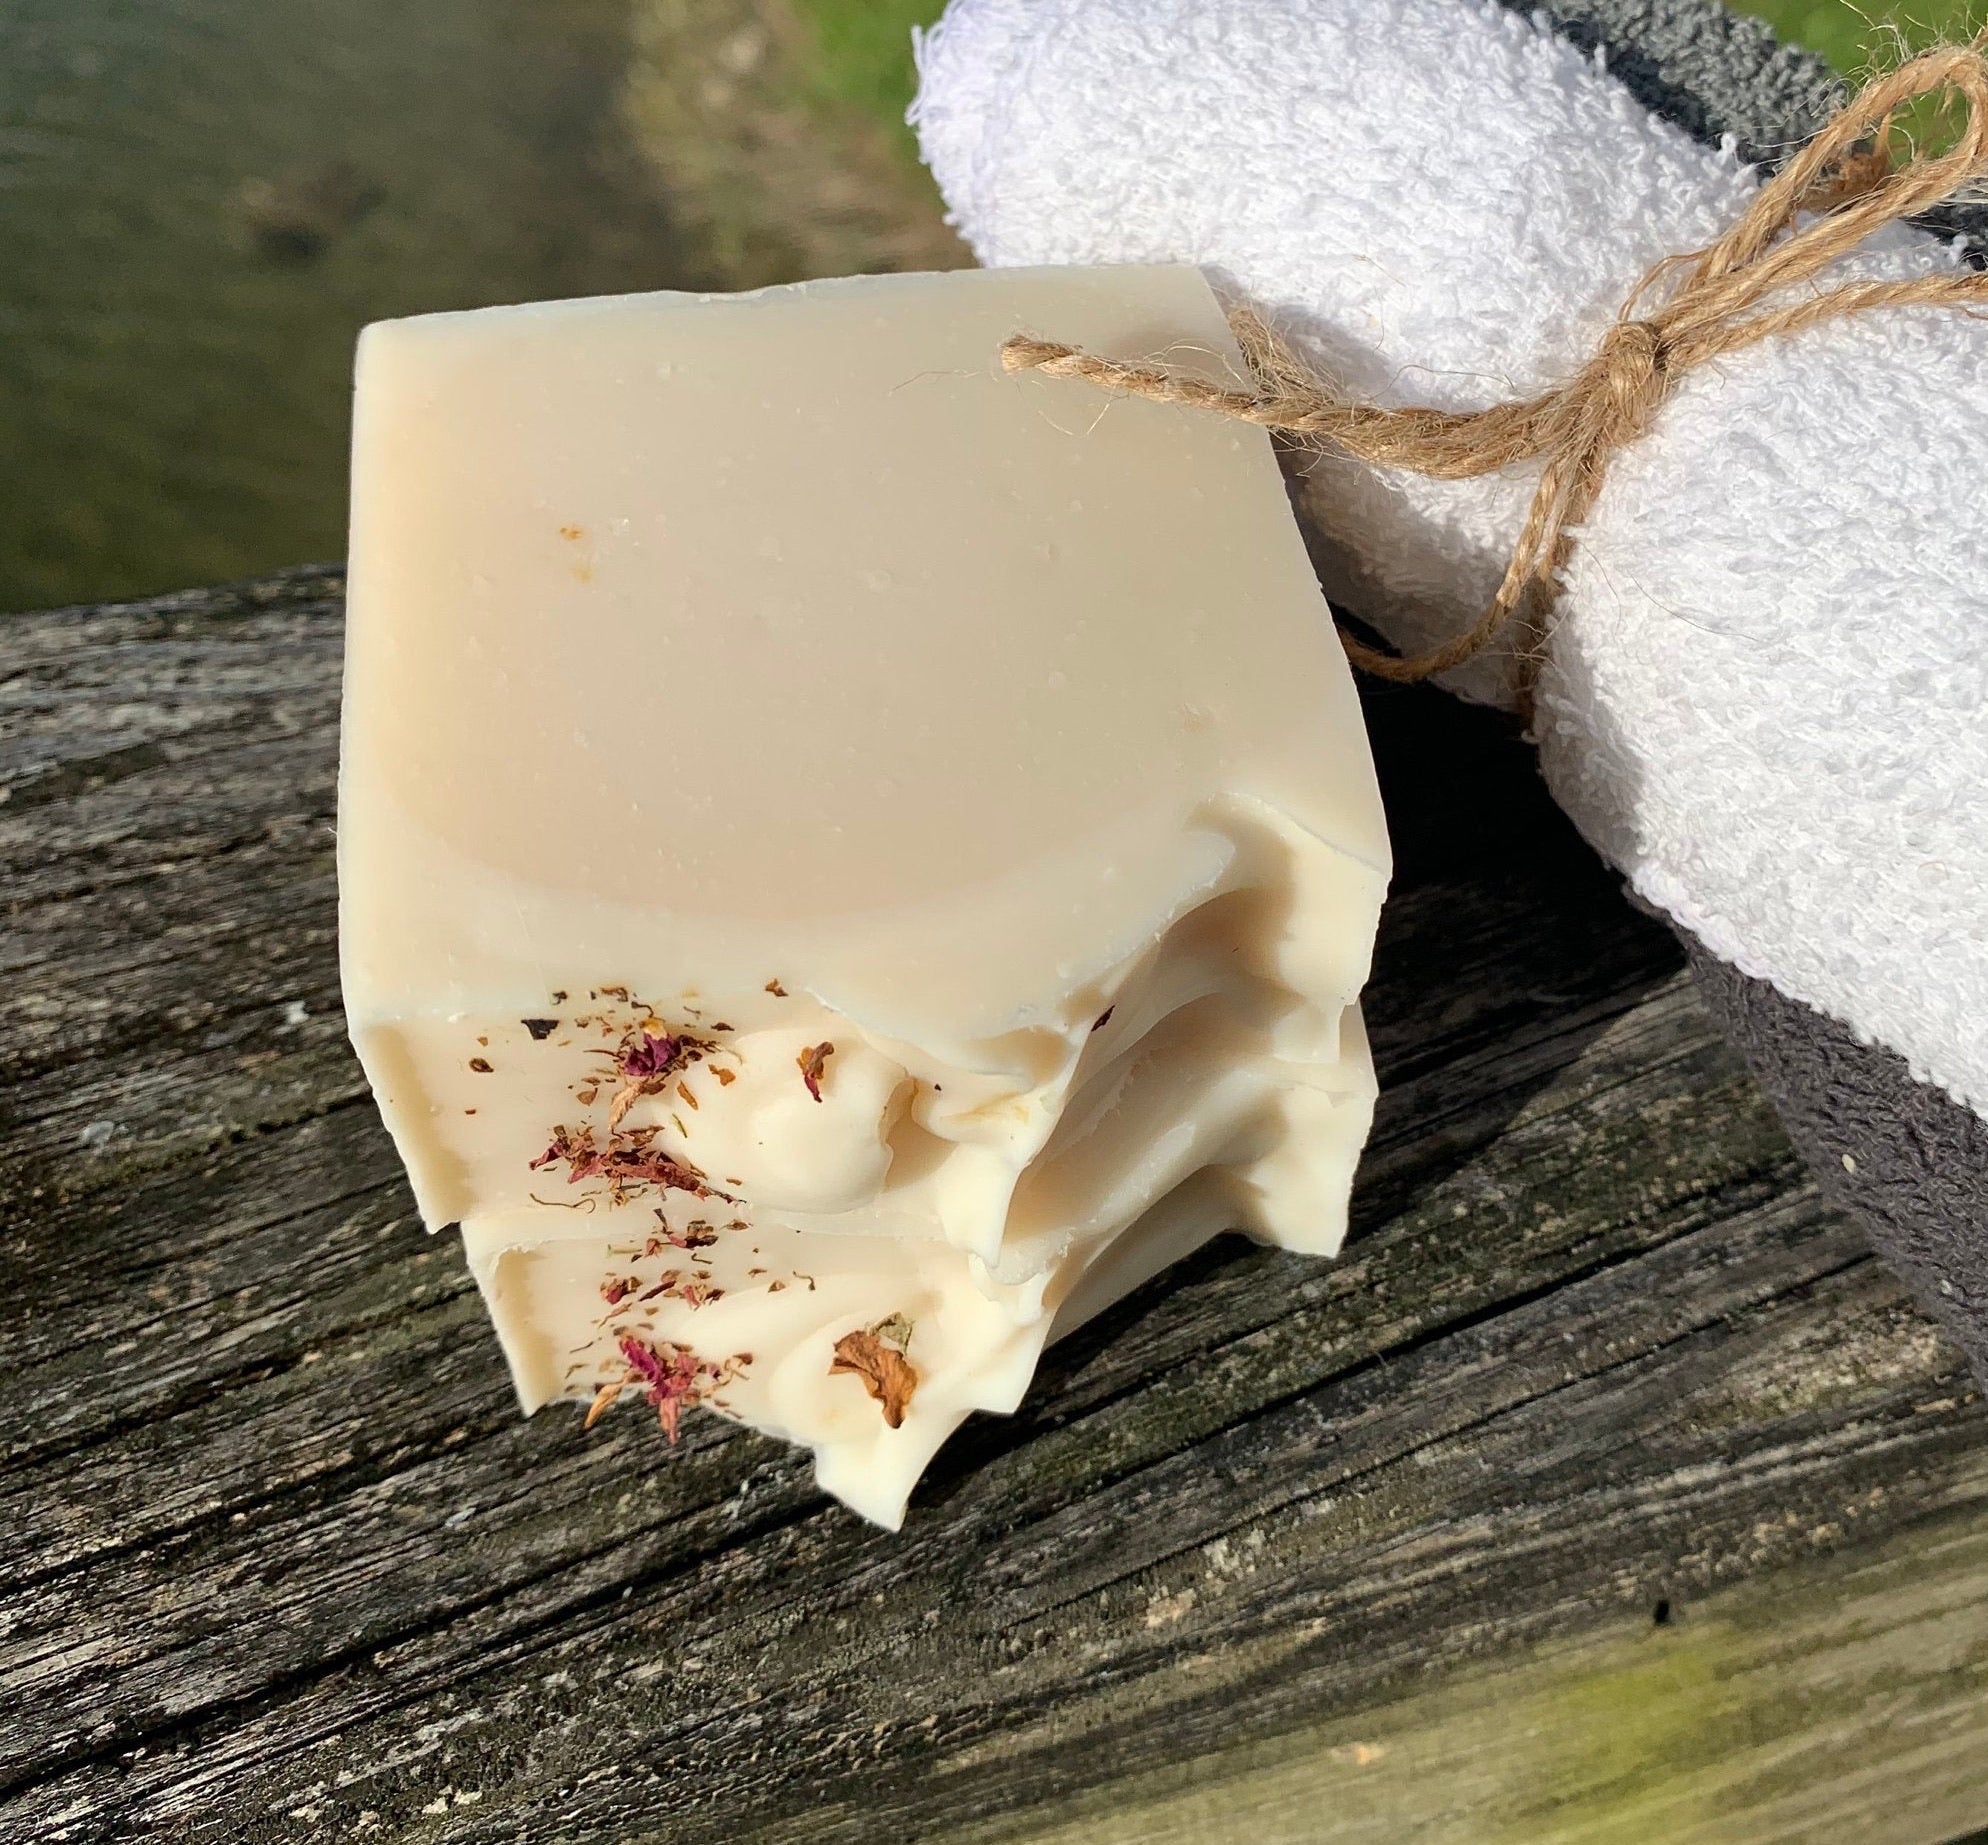 Yoni/ Apple Cider Vinegar Soap 3-4oz - TS Skin Co.